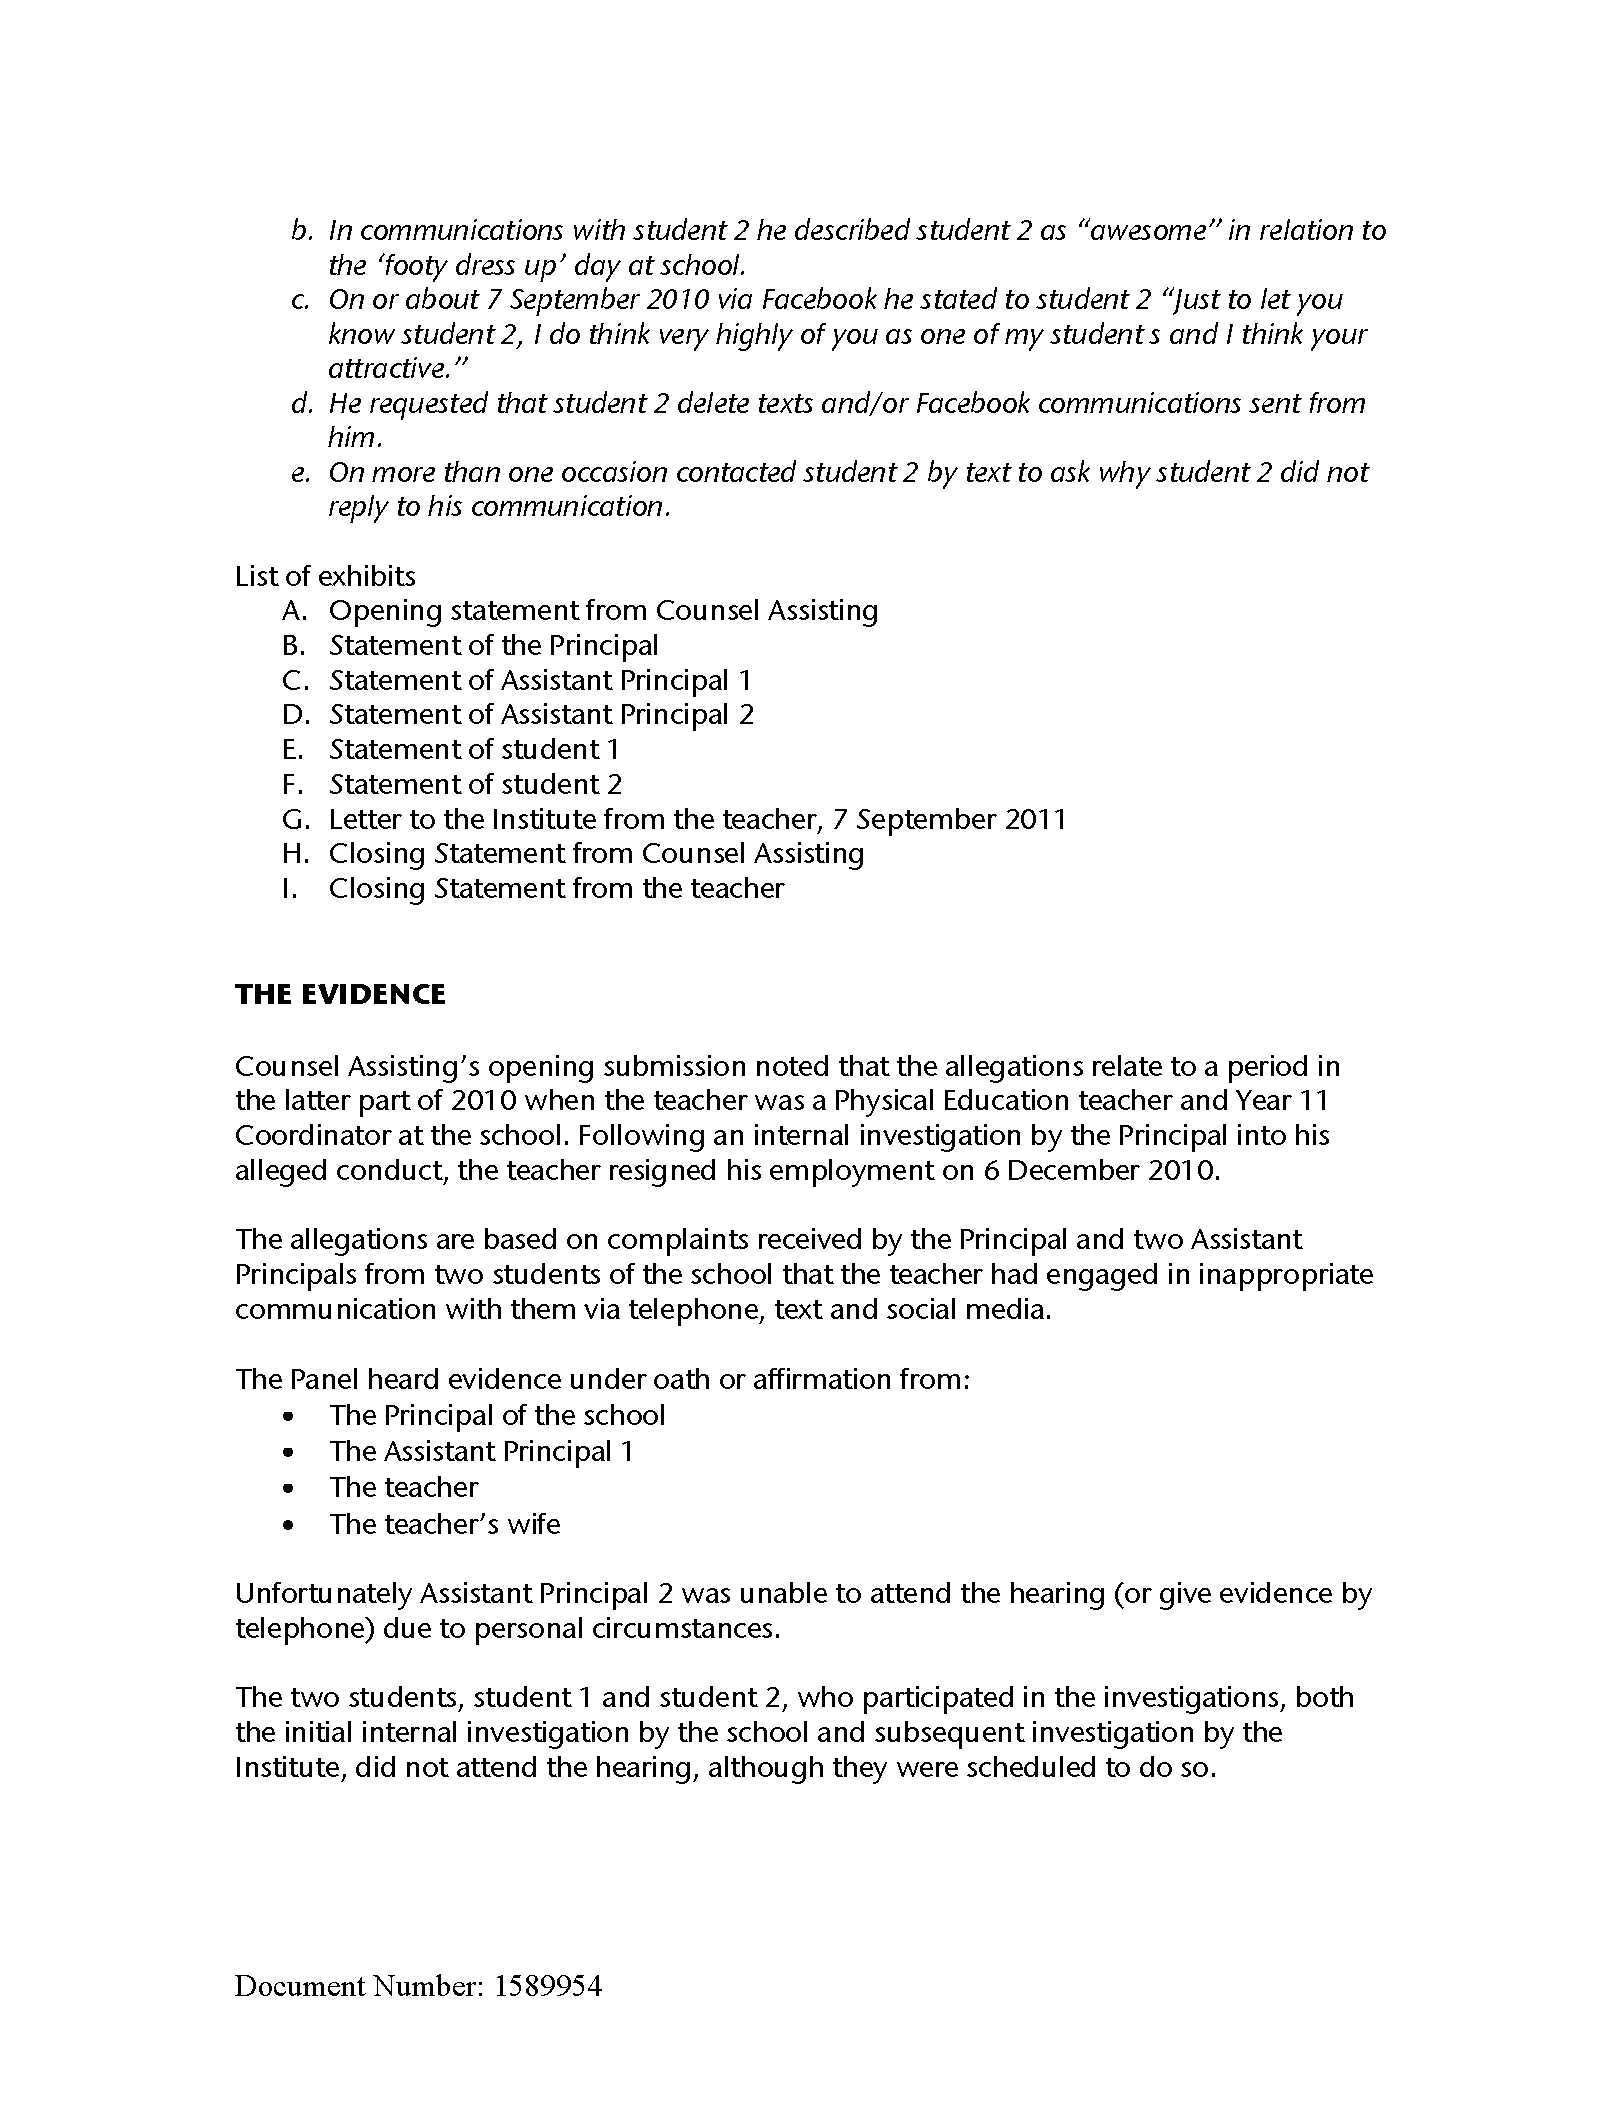 Copy of SanitisedPleydellDecision04.png